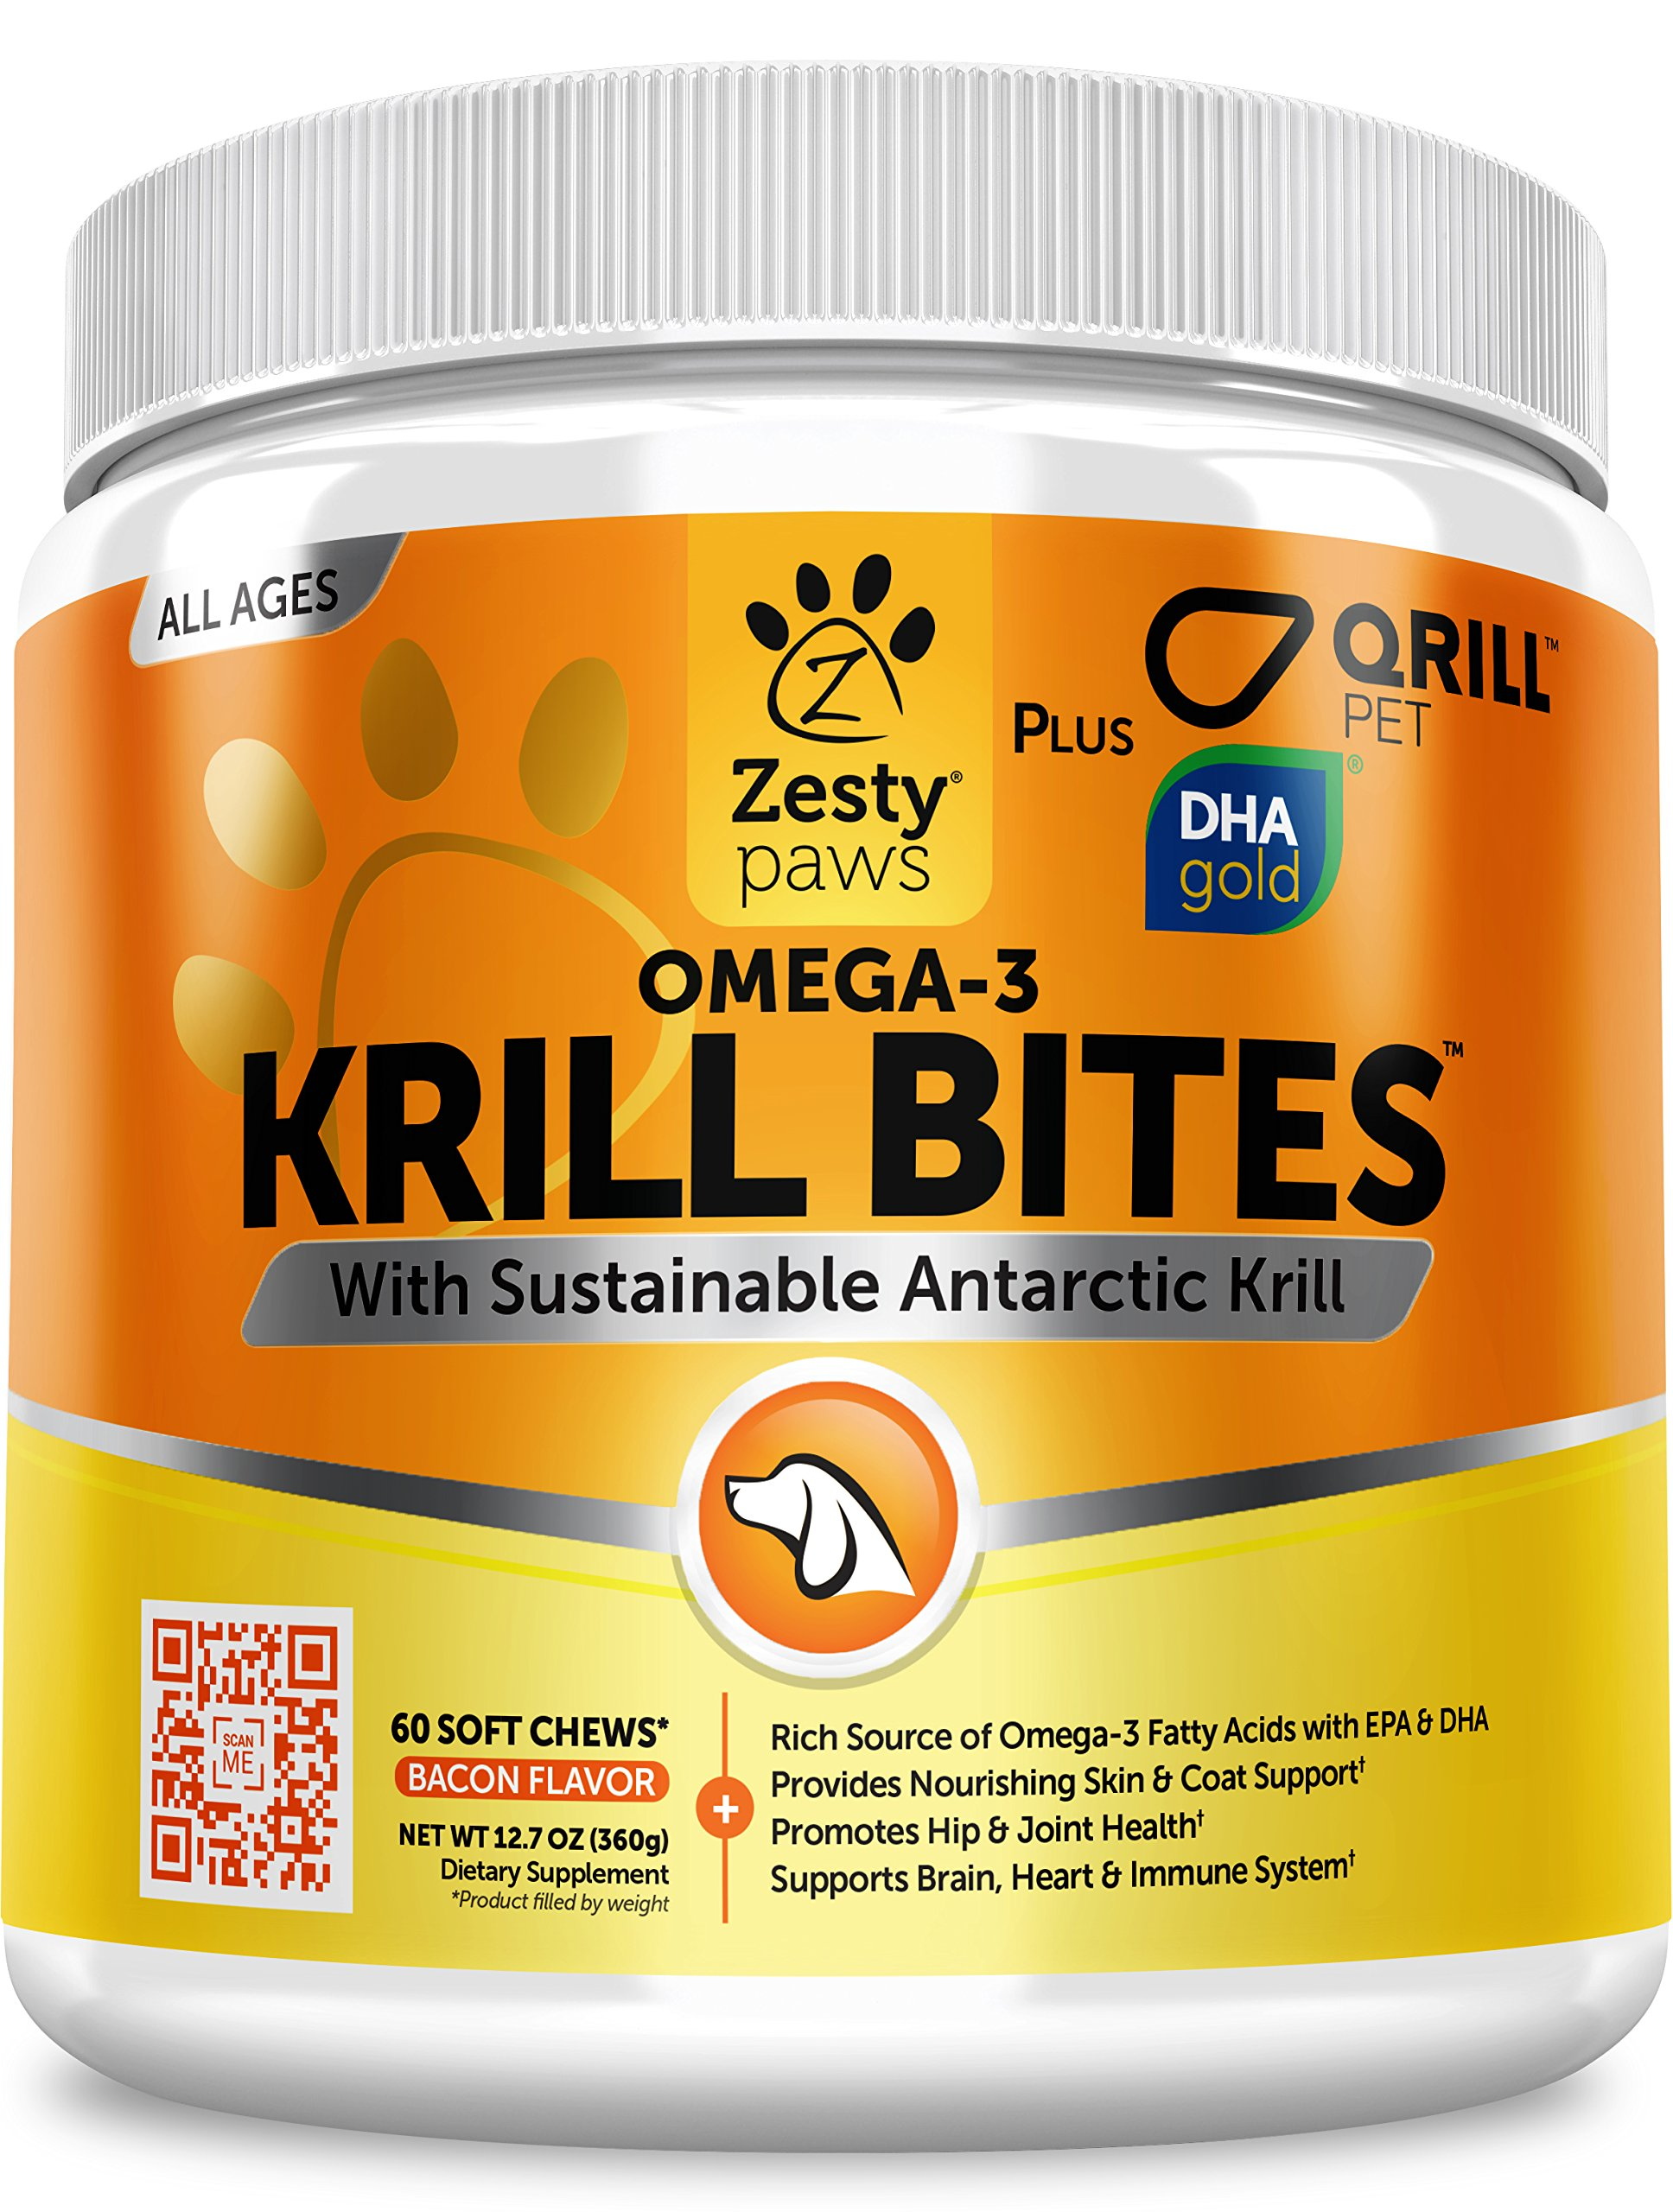 Omega 3 Krill Fish Oil for Dogs - Hip & Joint Arthritis Relief + Skin & Coat Health Supplements - With Qrill Pet Meal & DHAgold + Hemp & Astaxanthin - Brain, Heart & Immune Support - 90 Chew Treats by Zesty Paws